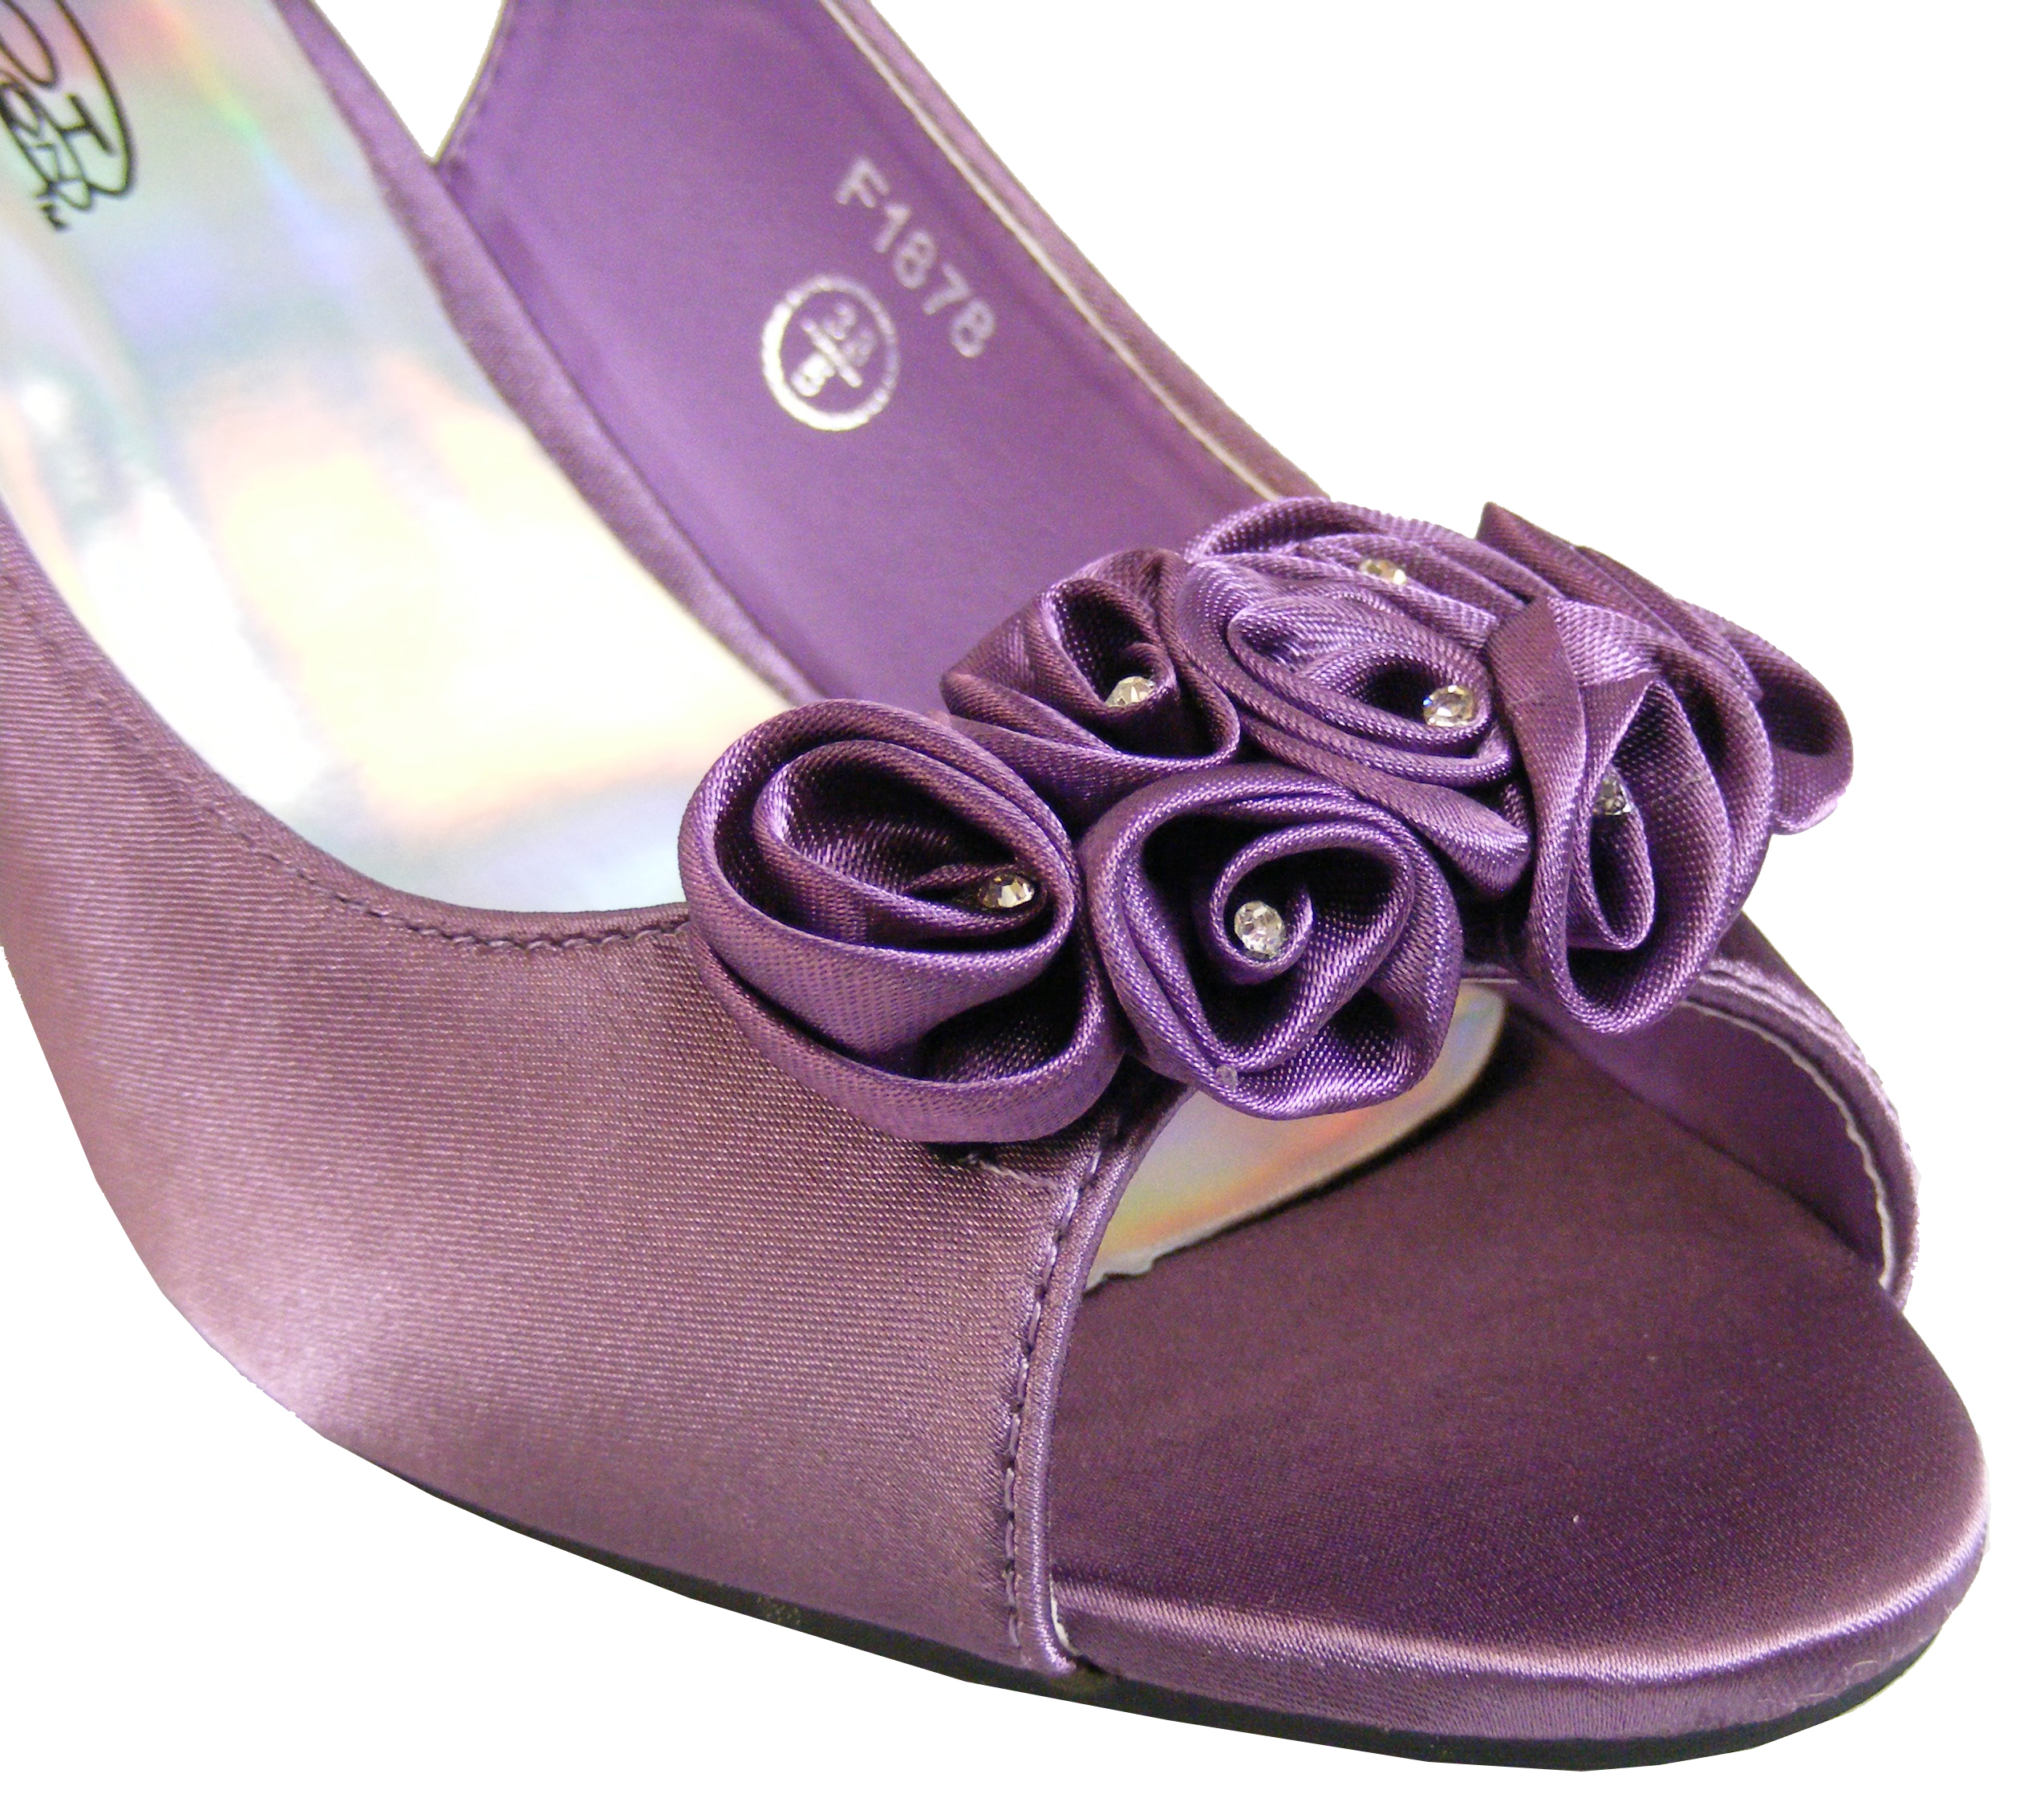 Purple Slingback Heels - Is Heel